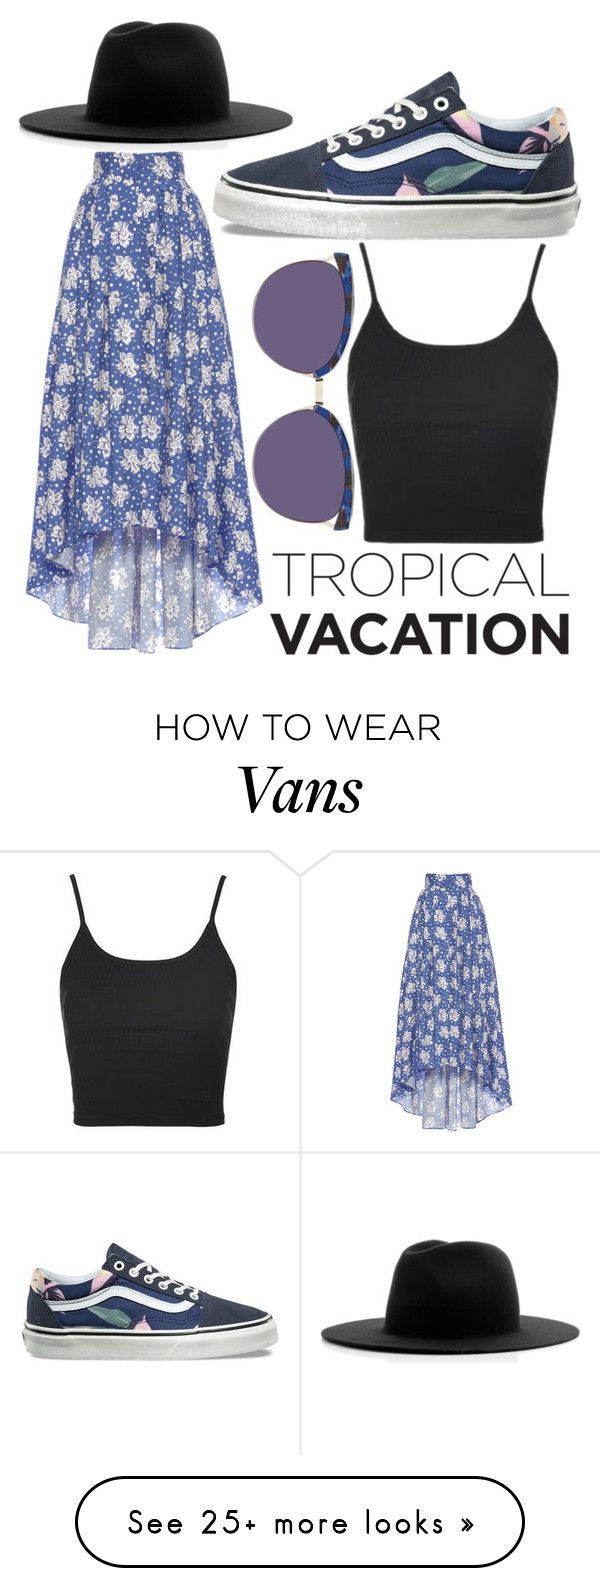 """Summer beach gig"" by phangirl4523 on Polyvore featuring LUISA BECCARIA, Vans, Topshop, Balmain and Études"